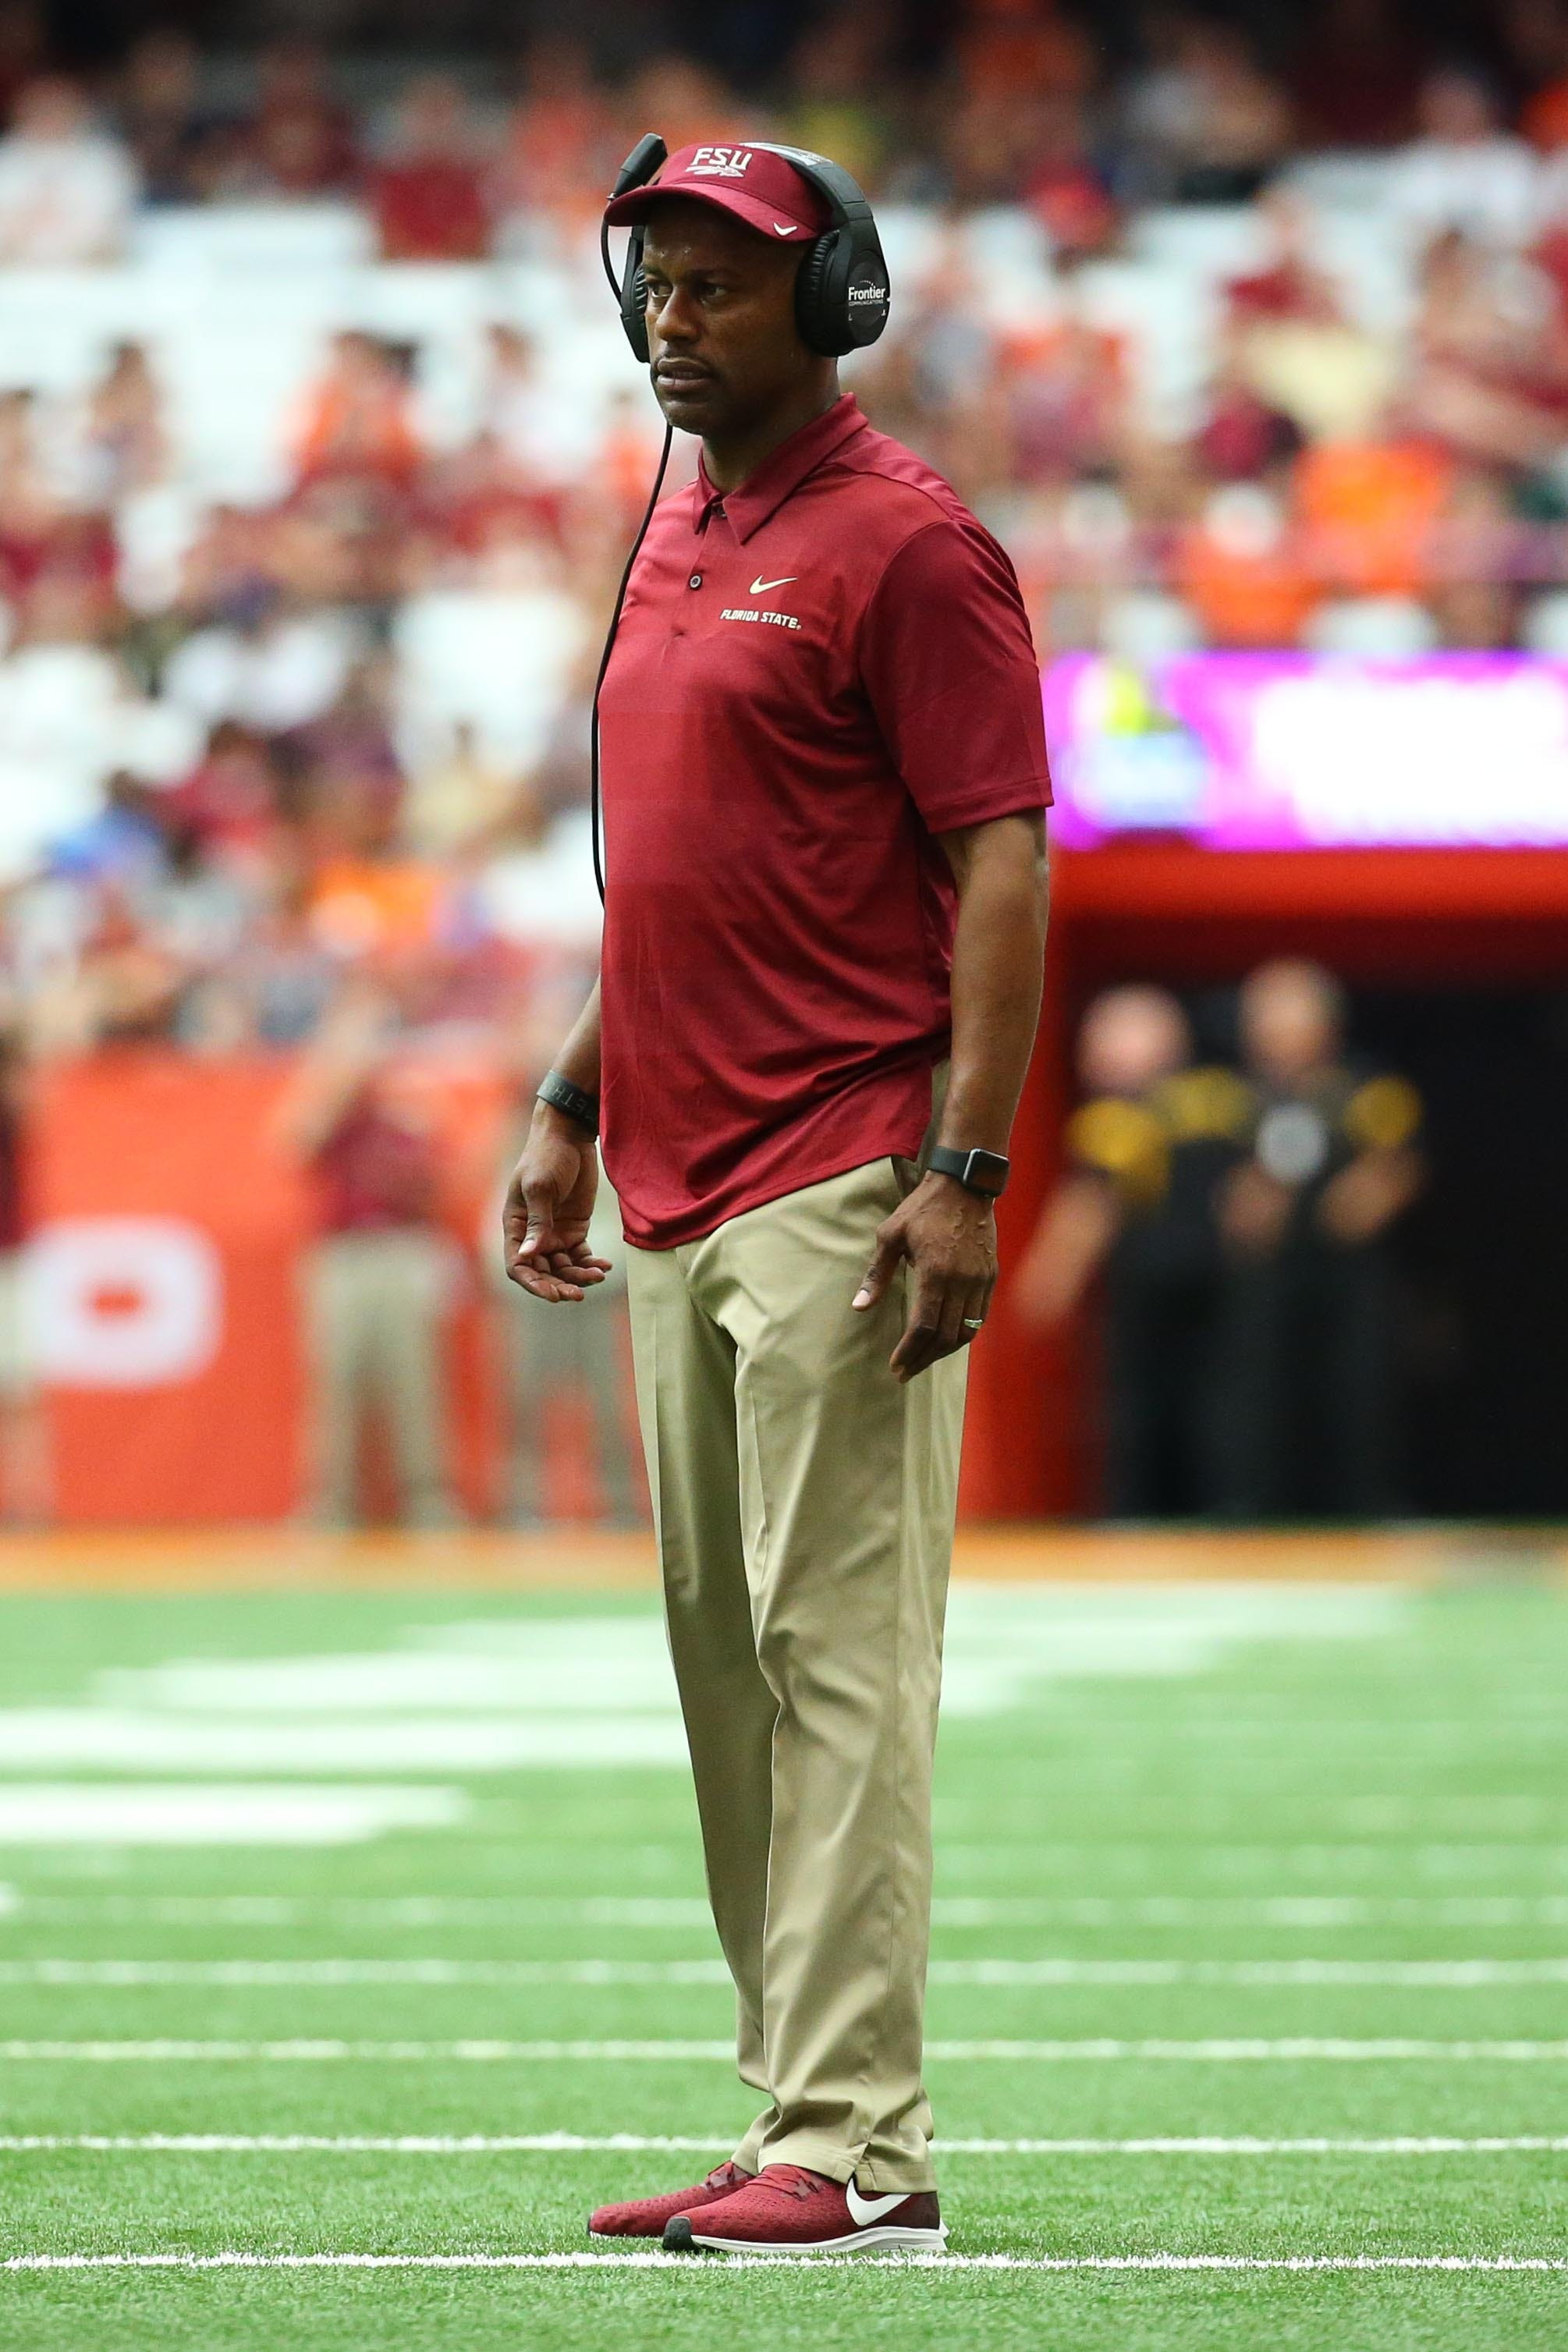 Fla. state attorney investigating racially charged post targeting FSU coach Willie Taggart